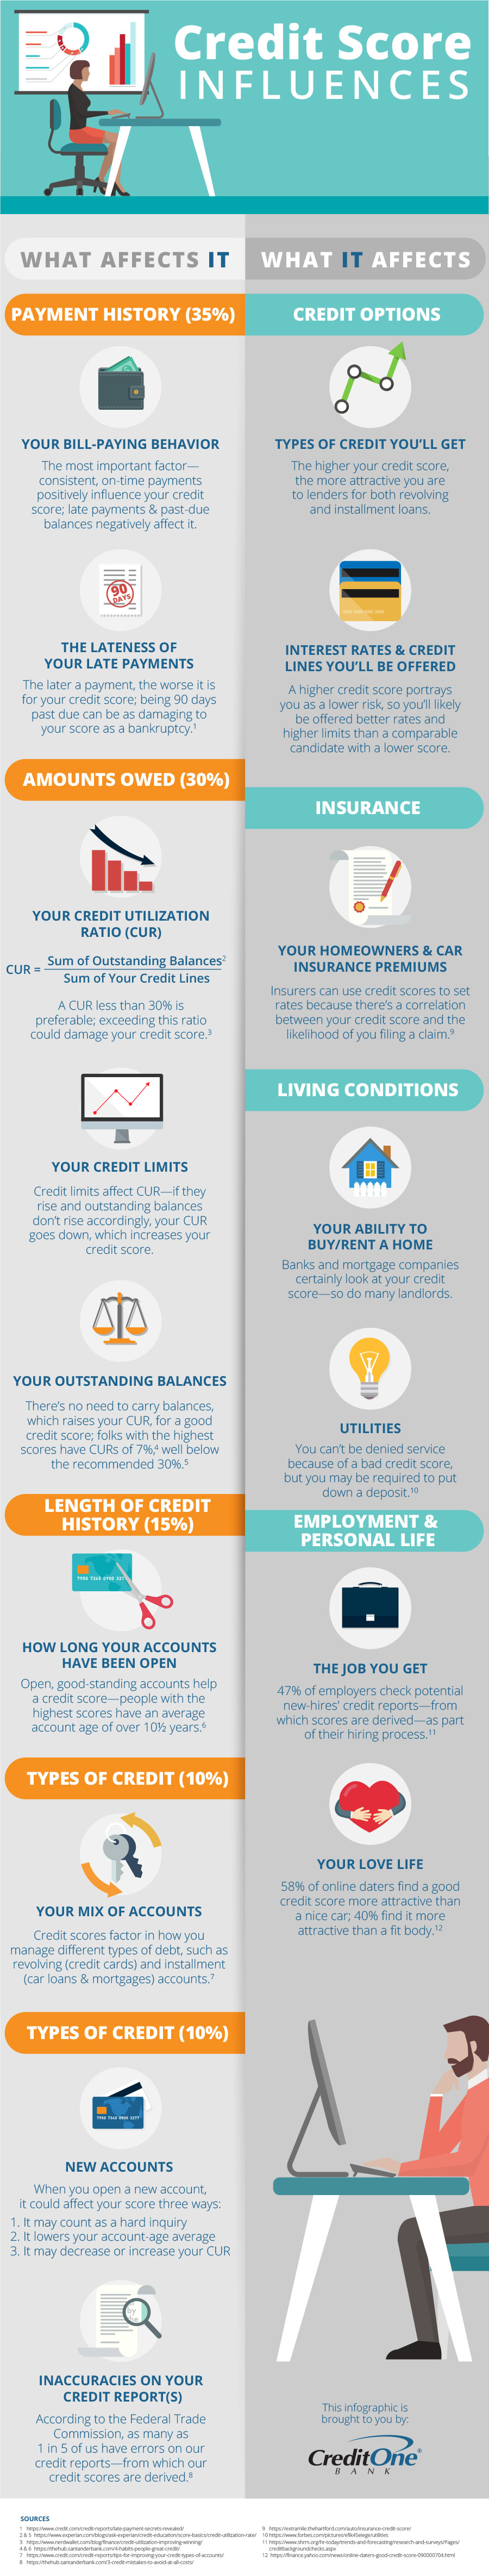 What Affects Your Credit Score & What It Affects [Infographic]